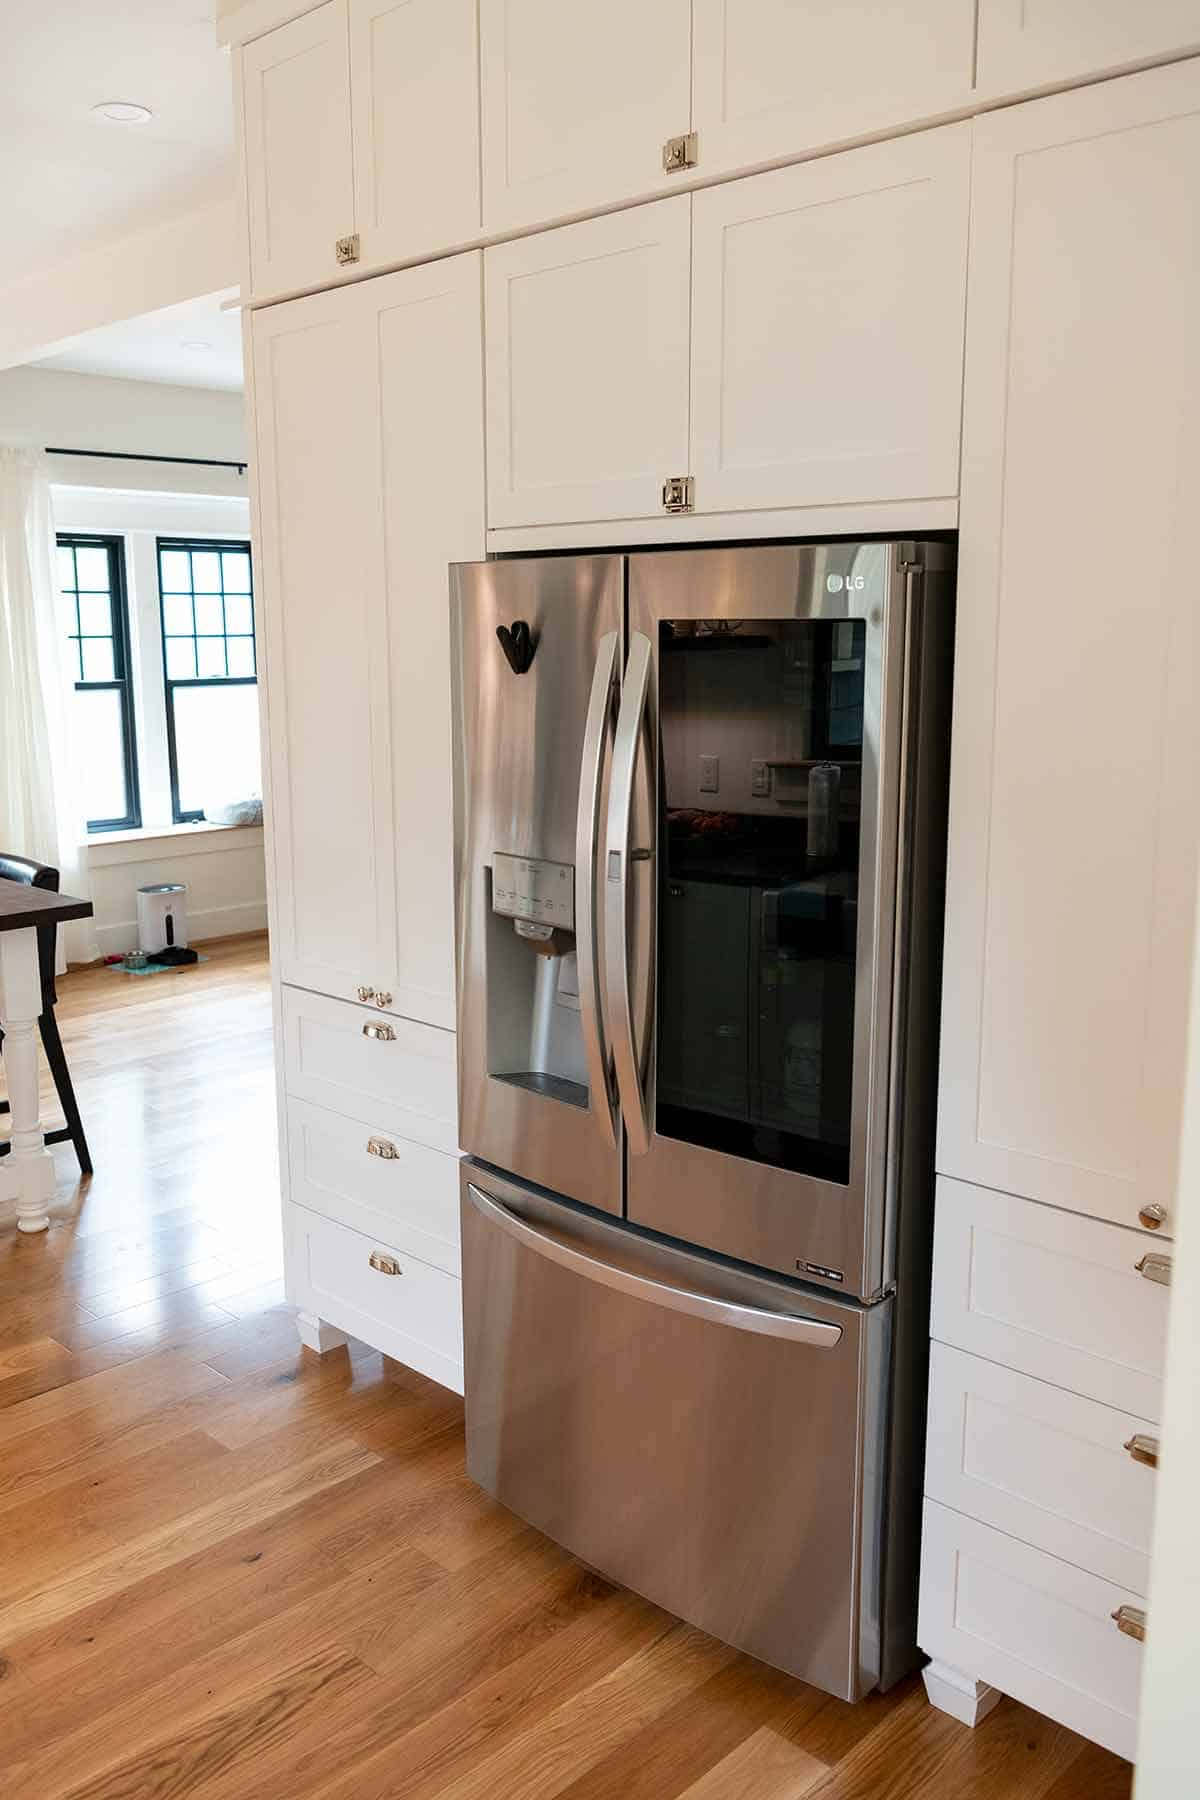 Remodeled kitchen with floor to ceiling cabinets